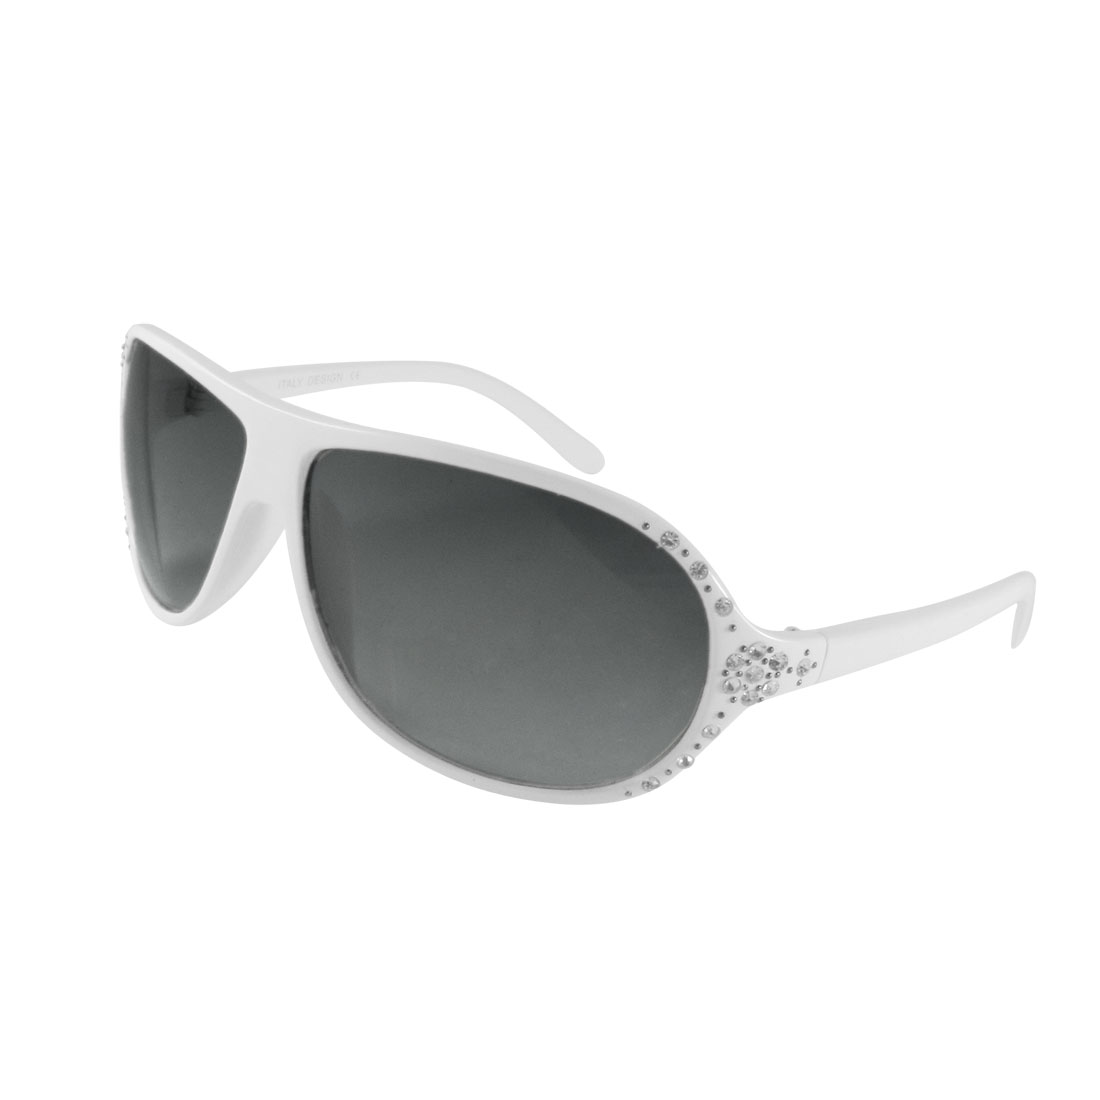 Rhinestones Detailing White Full Rim Single Bridge Sunglasses Eyewear for Ladies